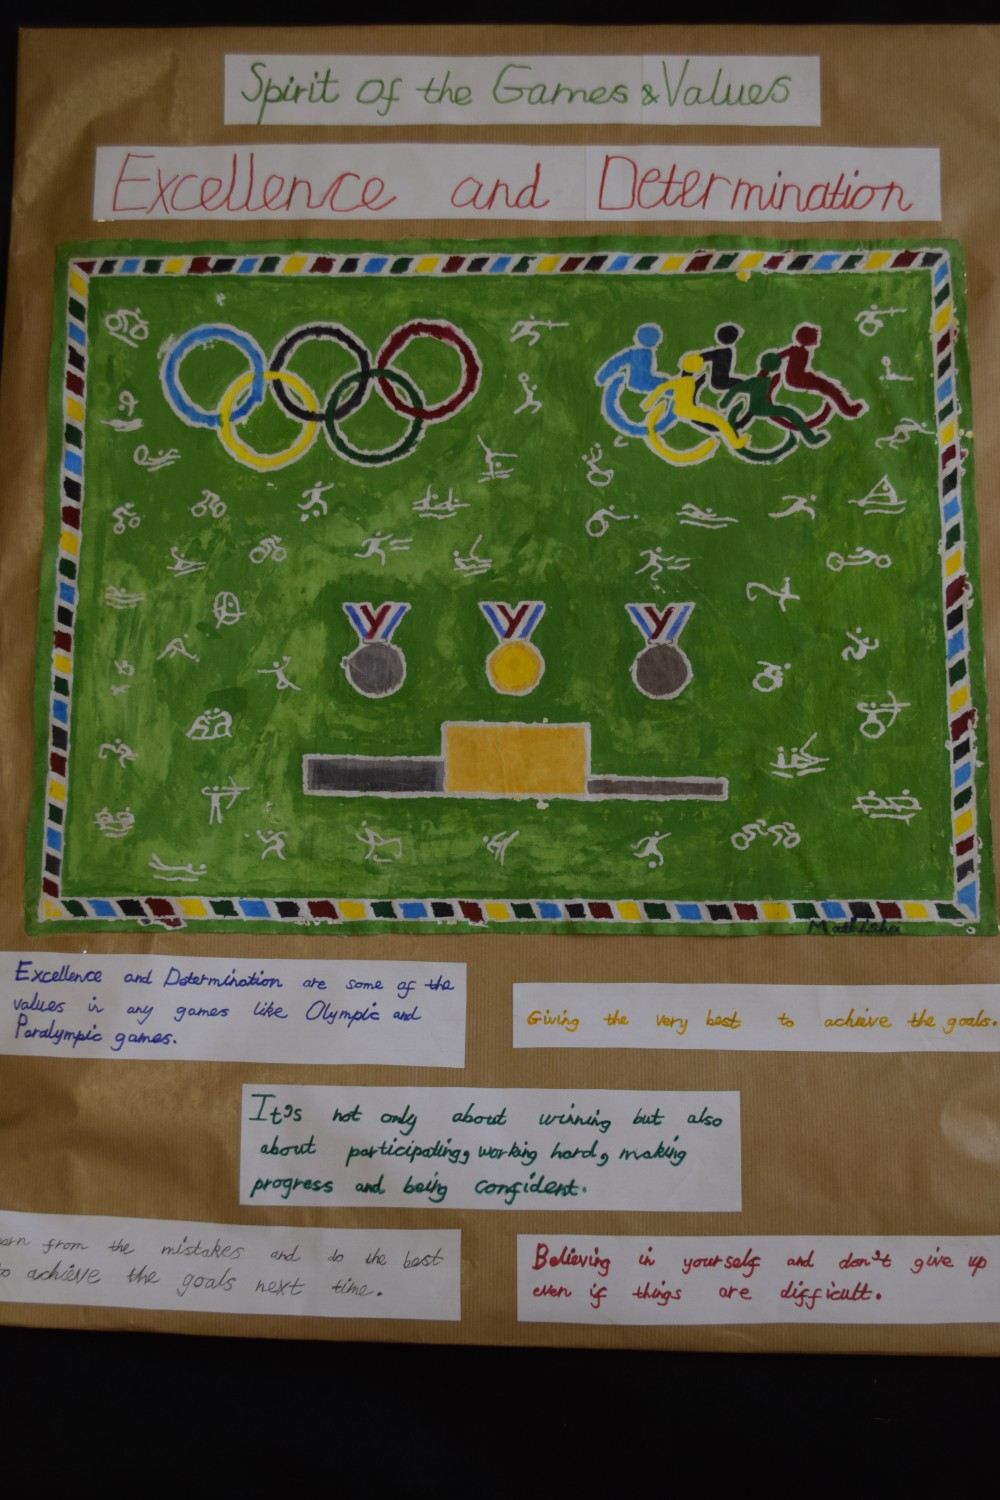 school games value poster competition hunts school sports